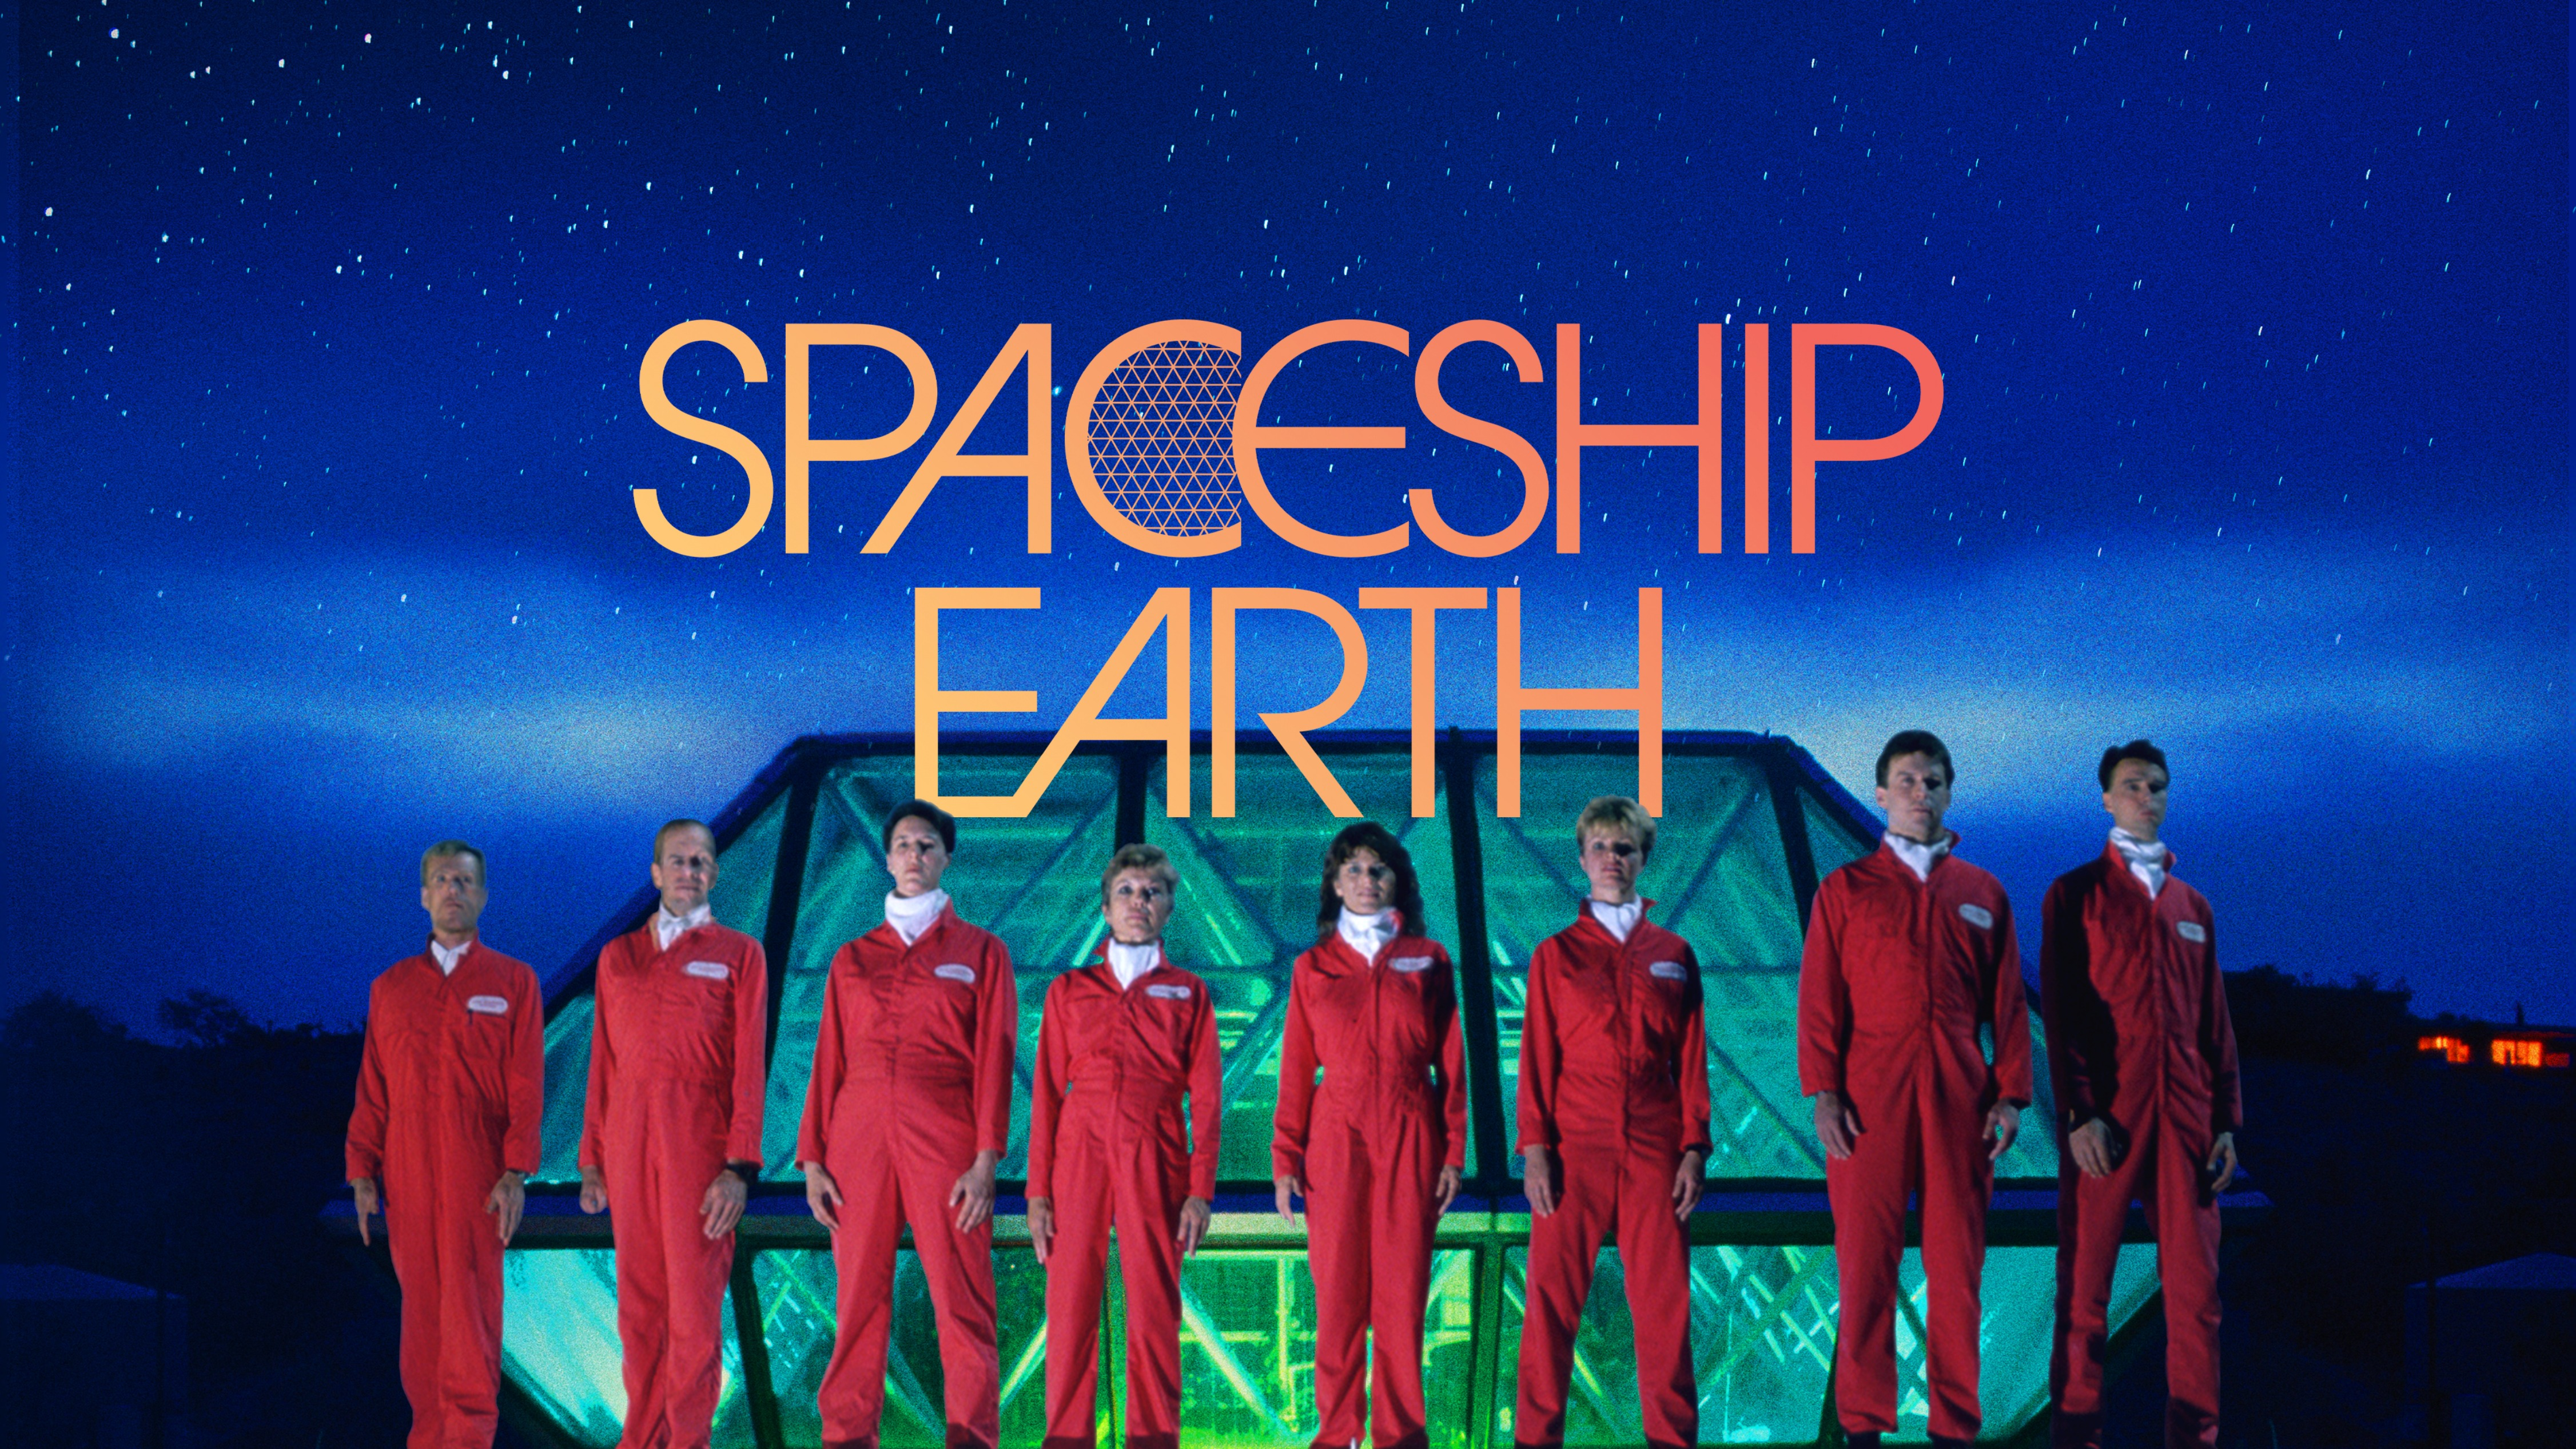 Spaceship Earth - Rent